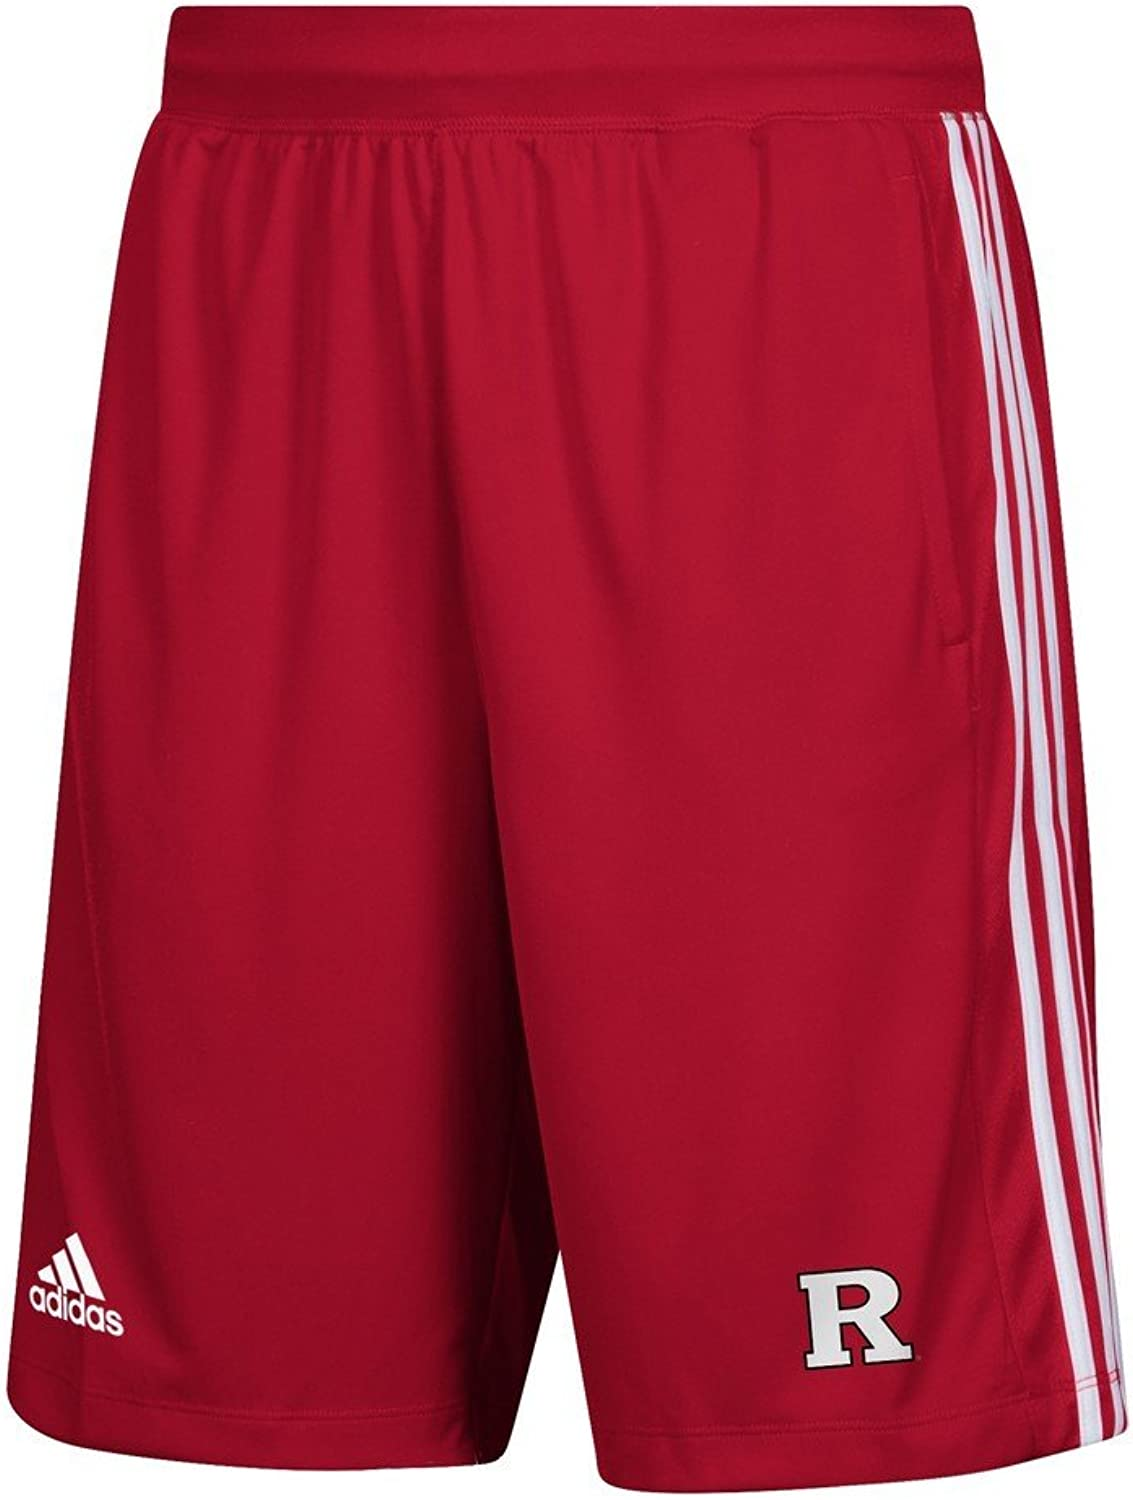 Adidas Rutgers University Men's Shorts 3 Stripes Knit Short